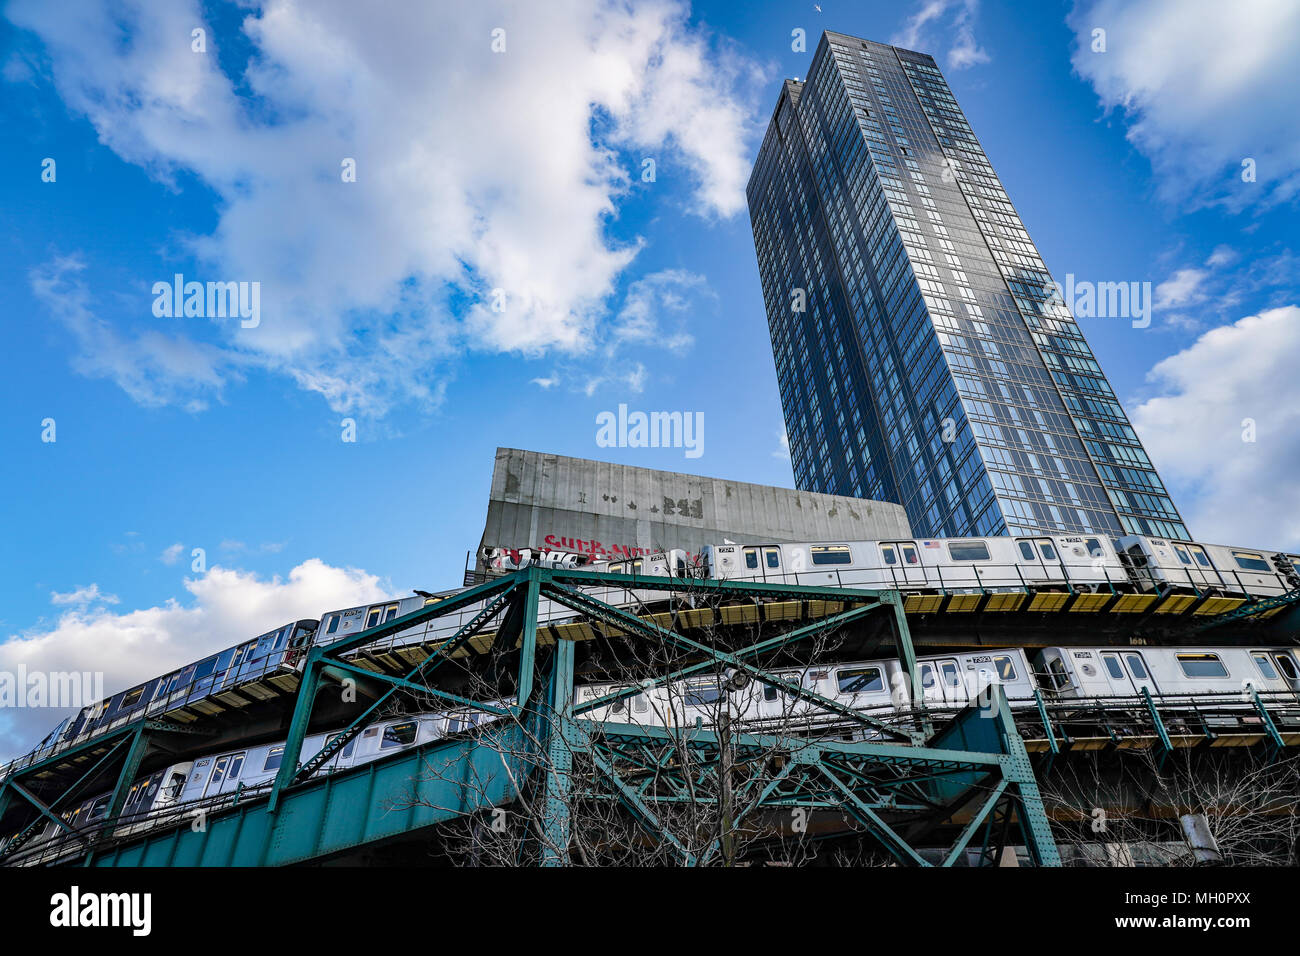 A view of the overground subway near Ed Koch Queensboro Bridge in New York City in the United States. From a series of travel photos in the United Sta Stock Photo